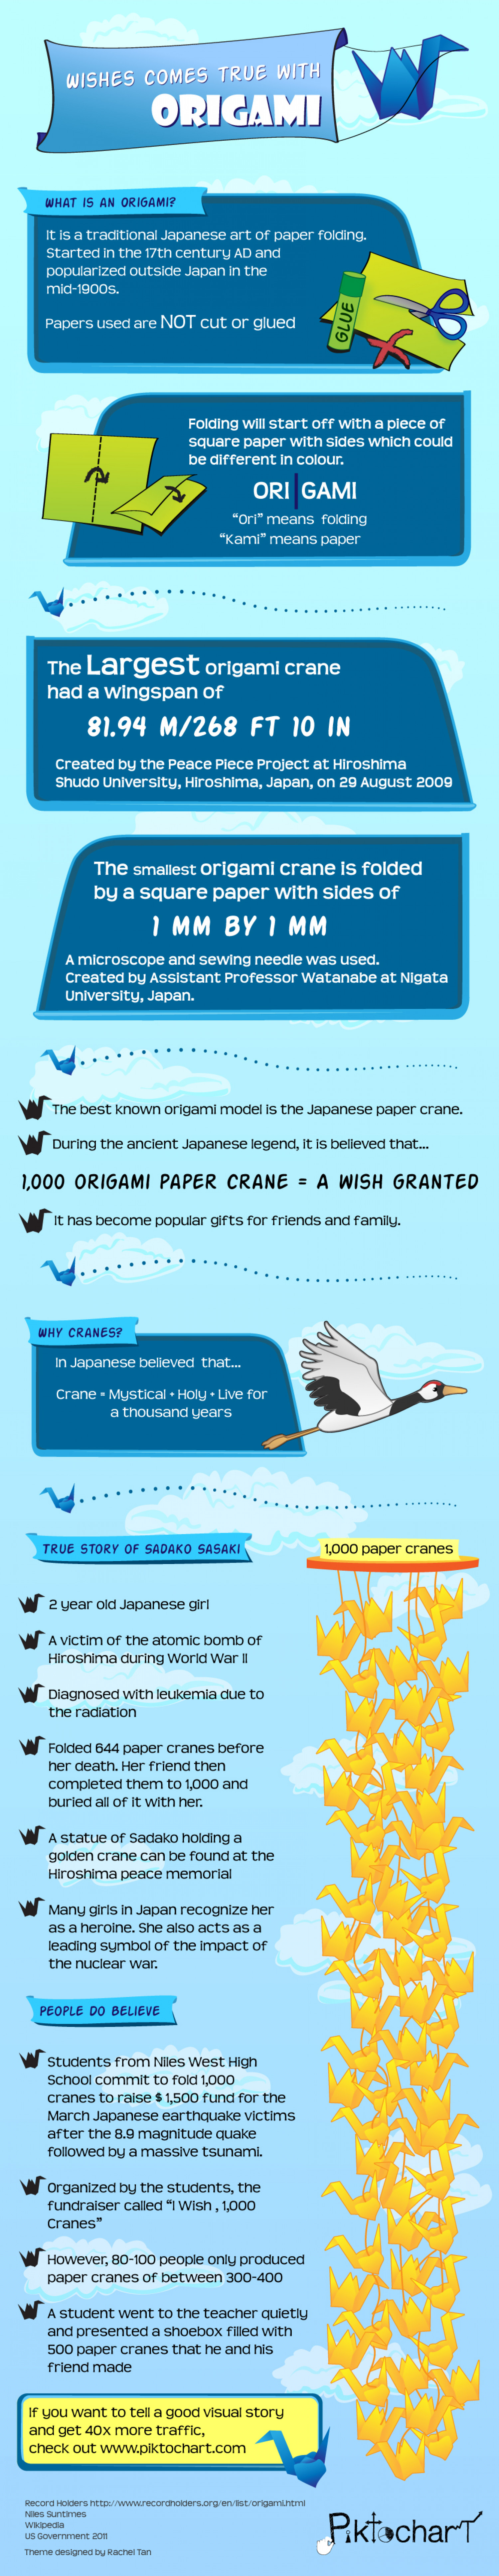 Wishes come true with  Origami Infographic